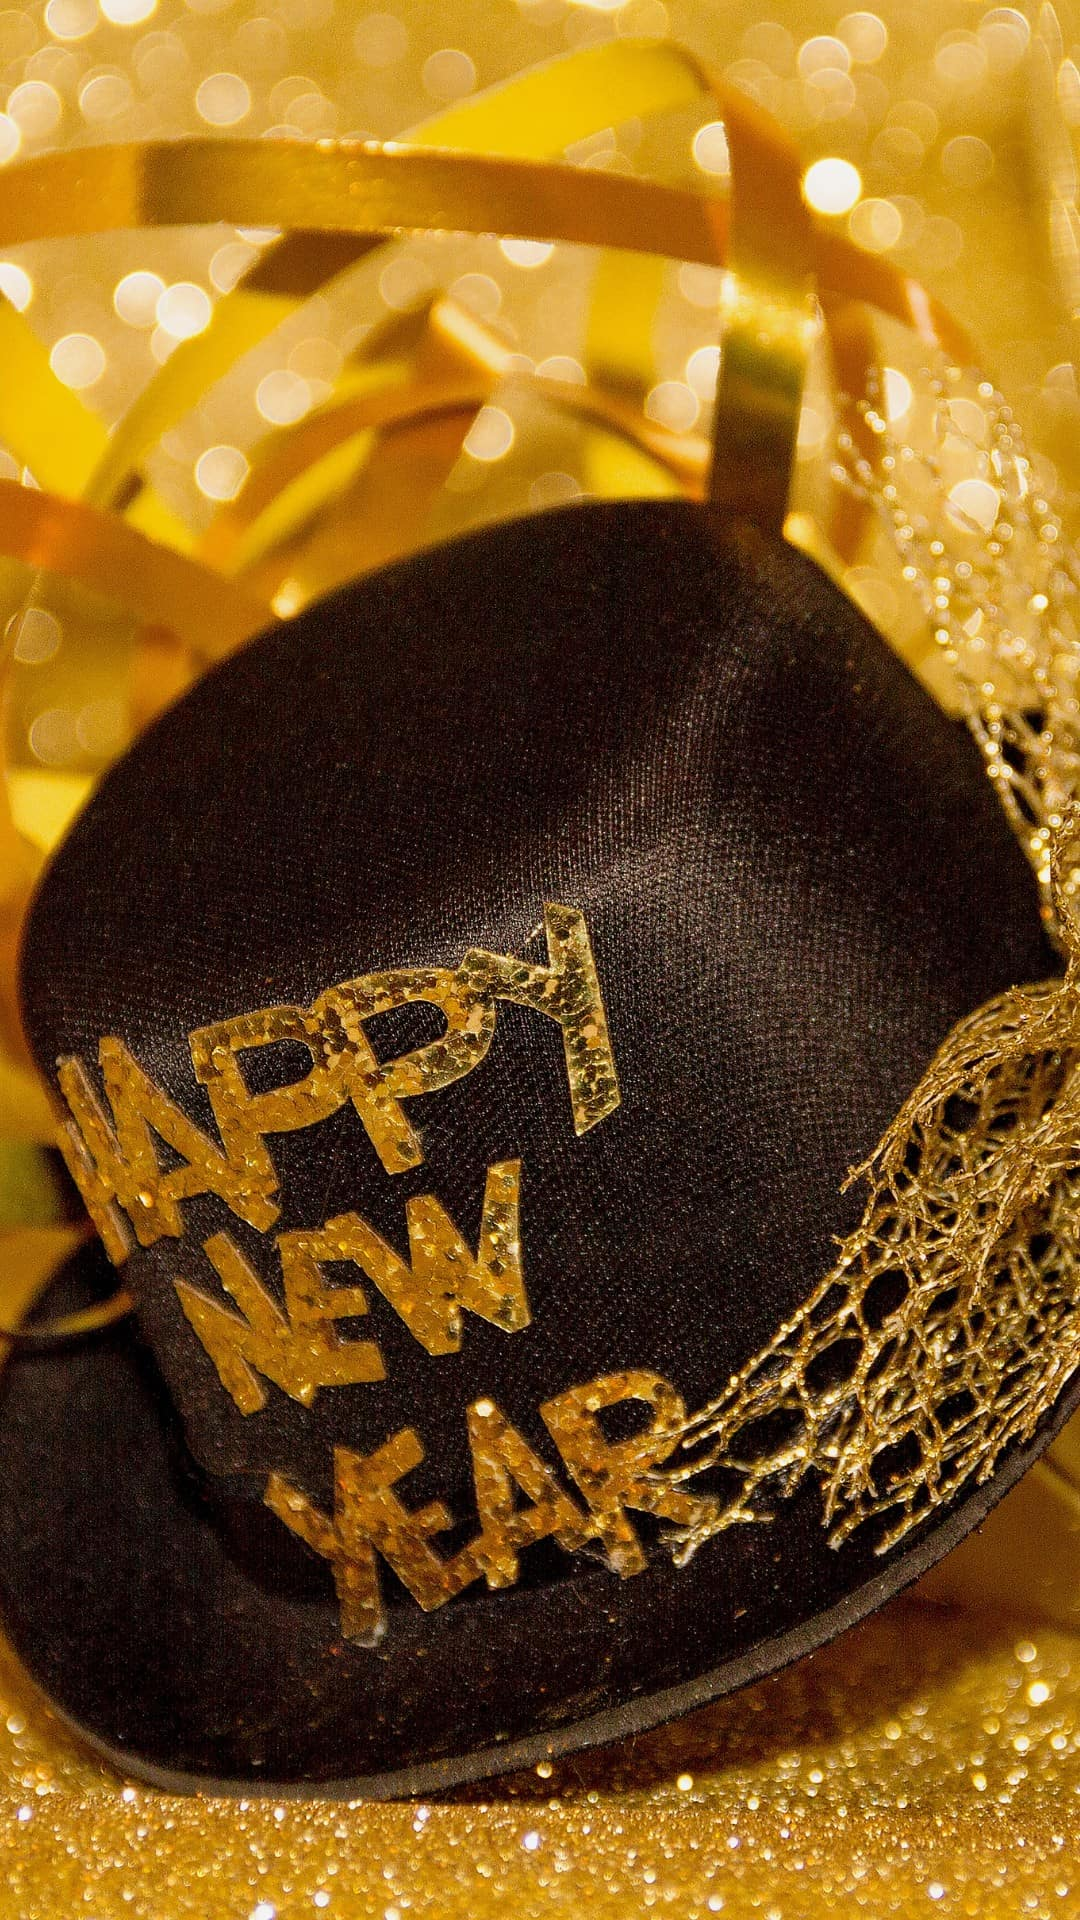 Happy New Years Aesthetic iPhone Wallpaper Backgrounds 24